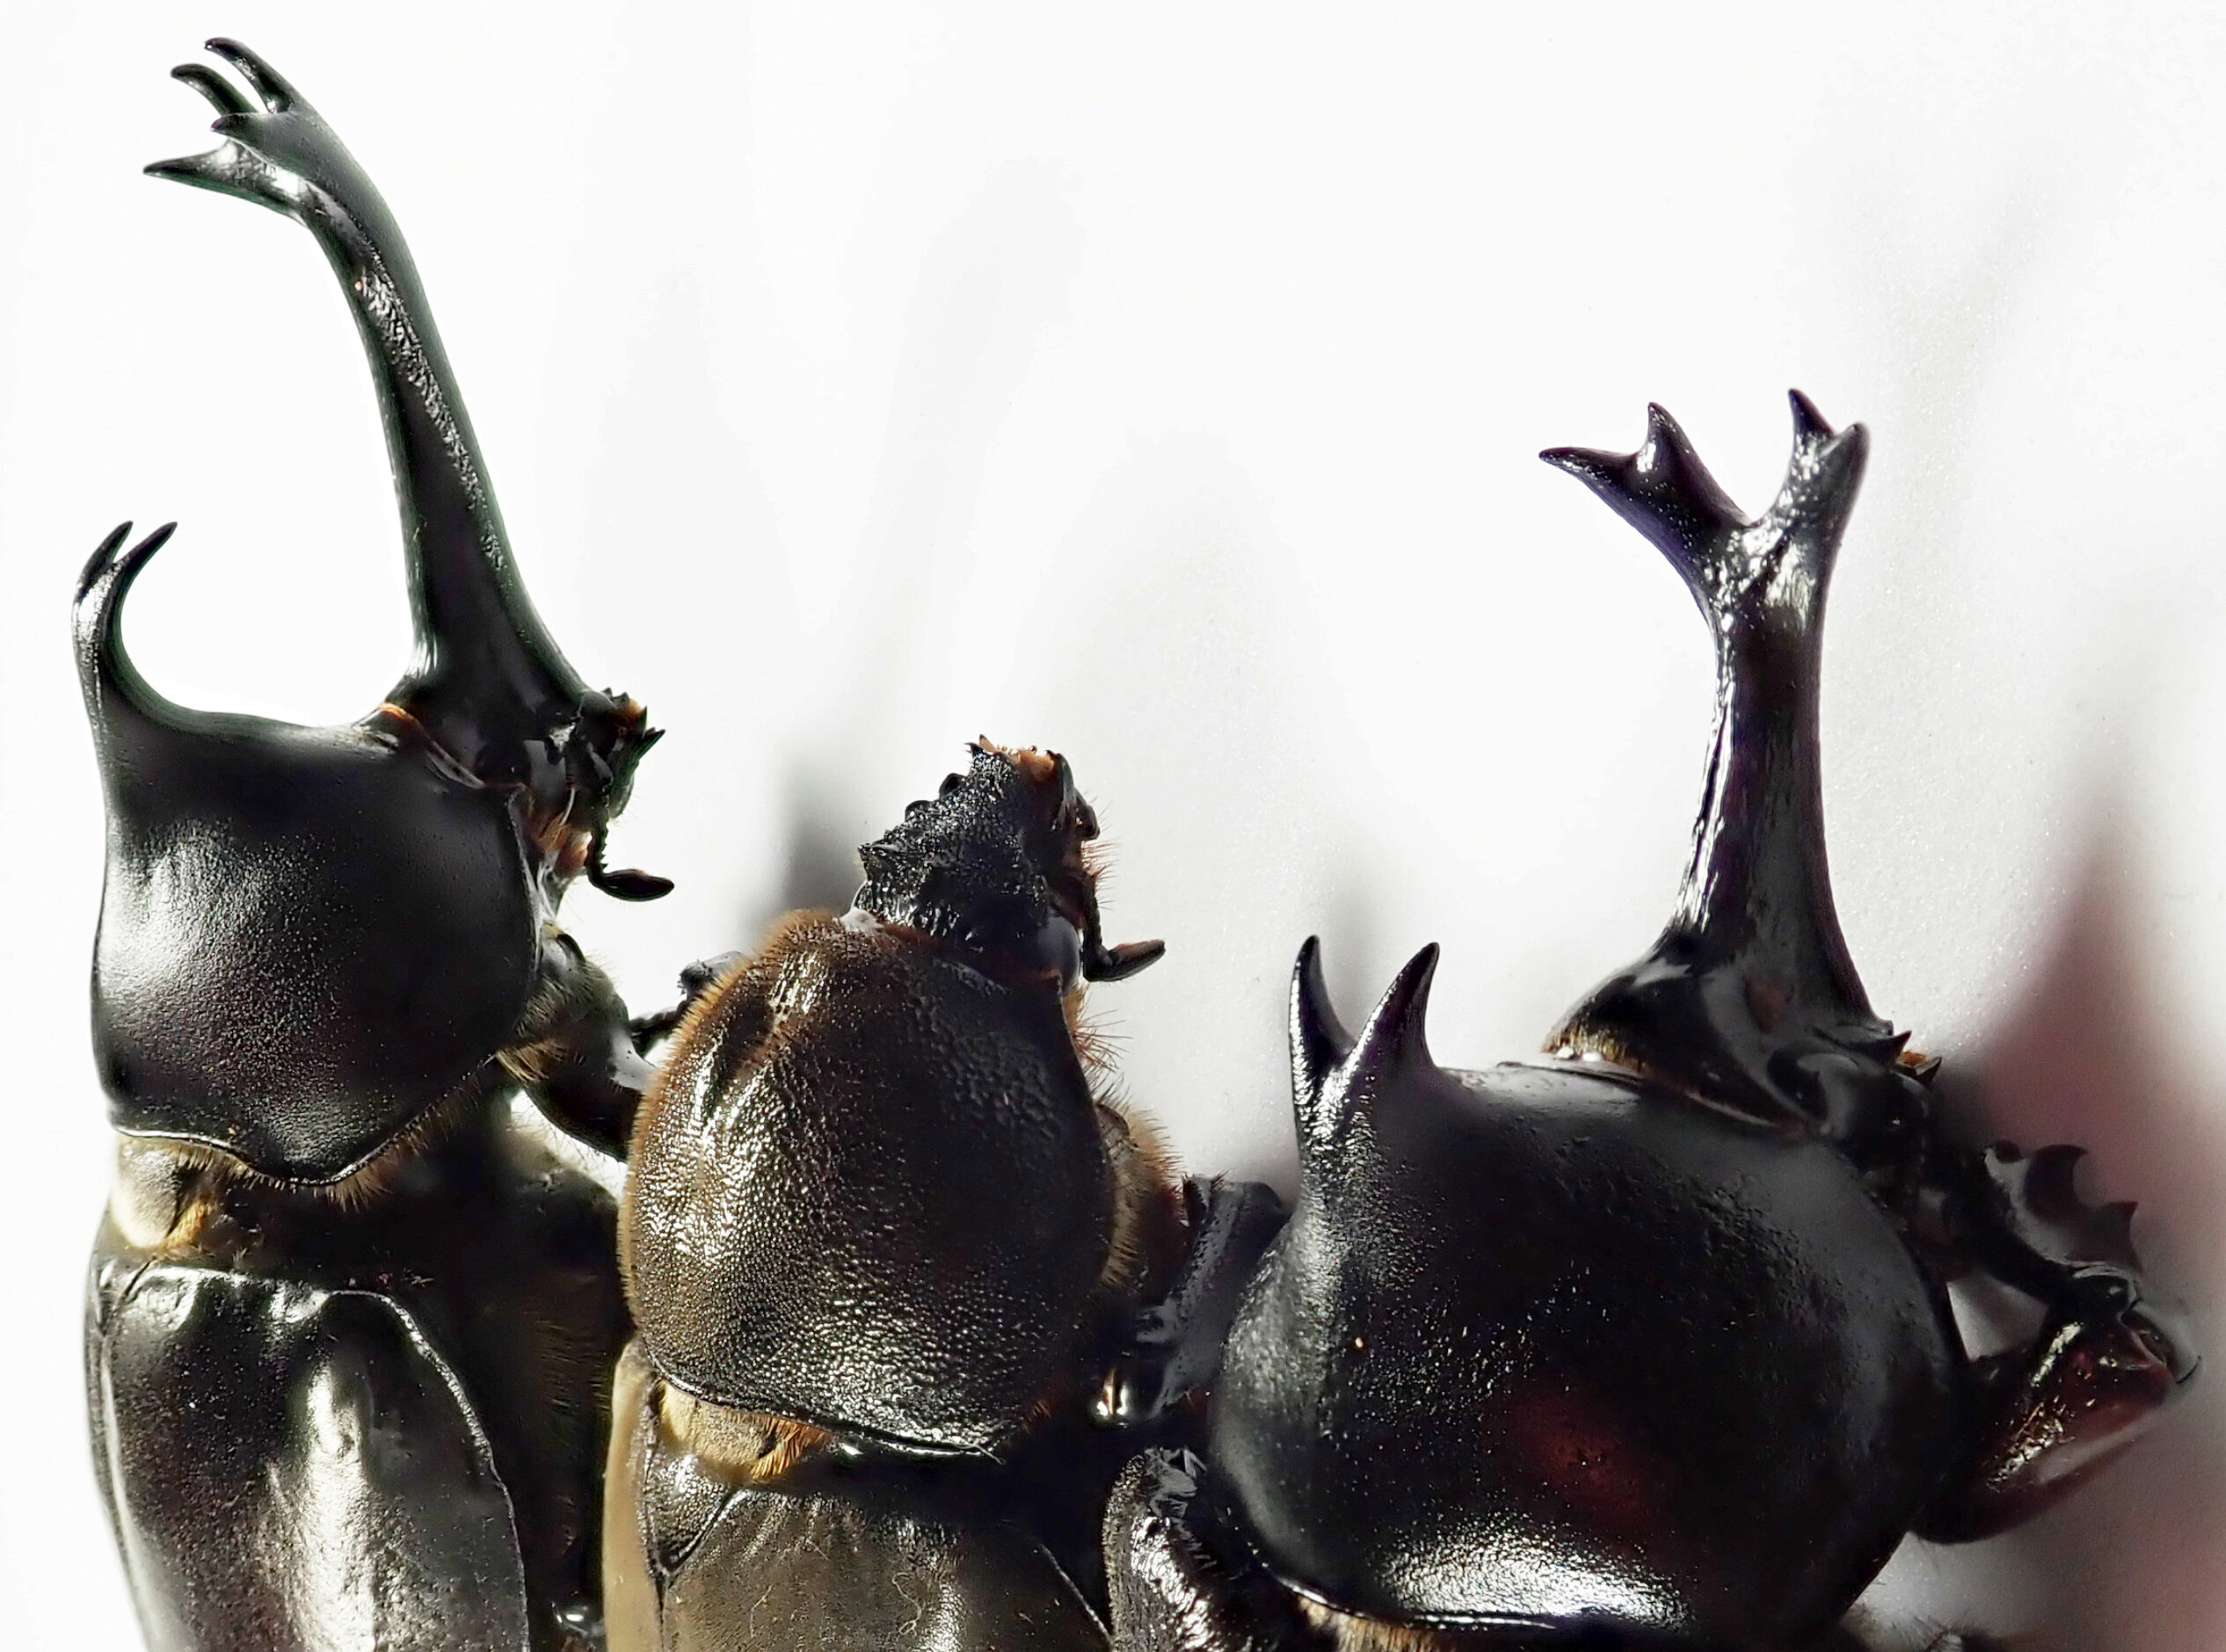 The Emergence Of Male And Female Traits In The Development Of Beetle Horns